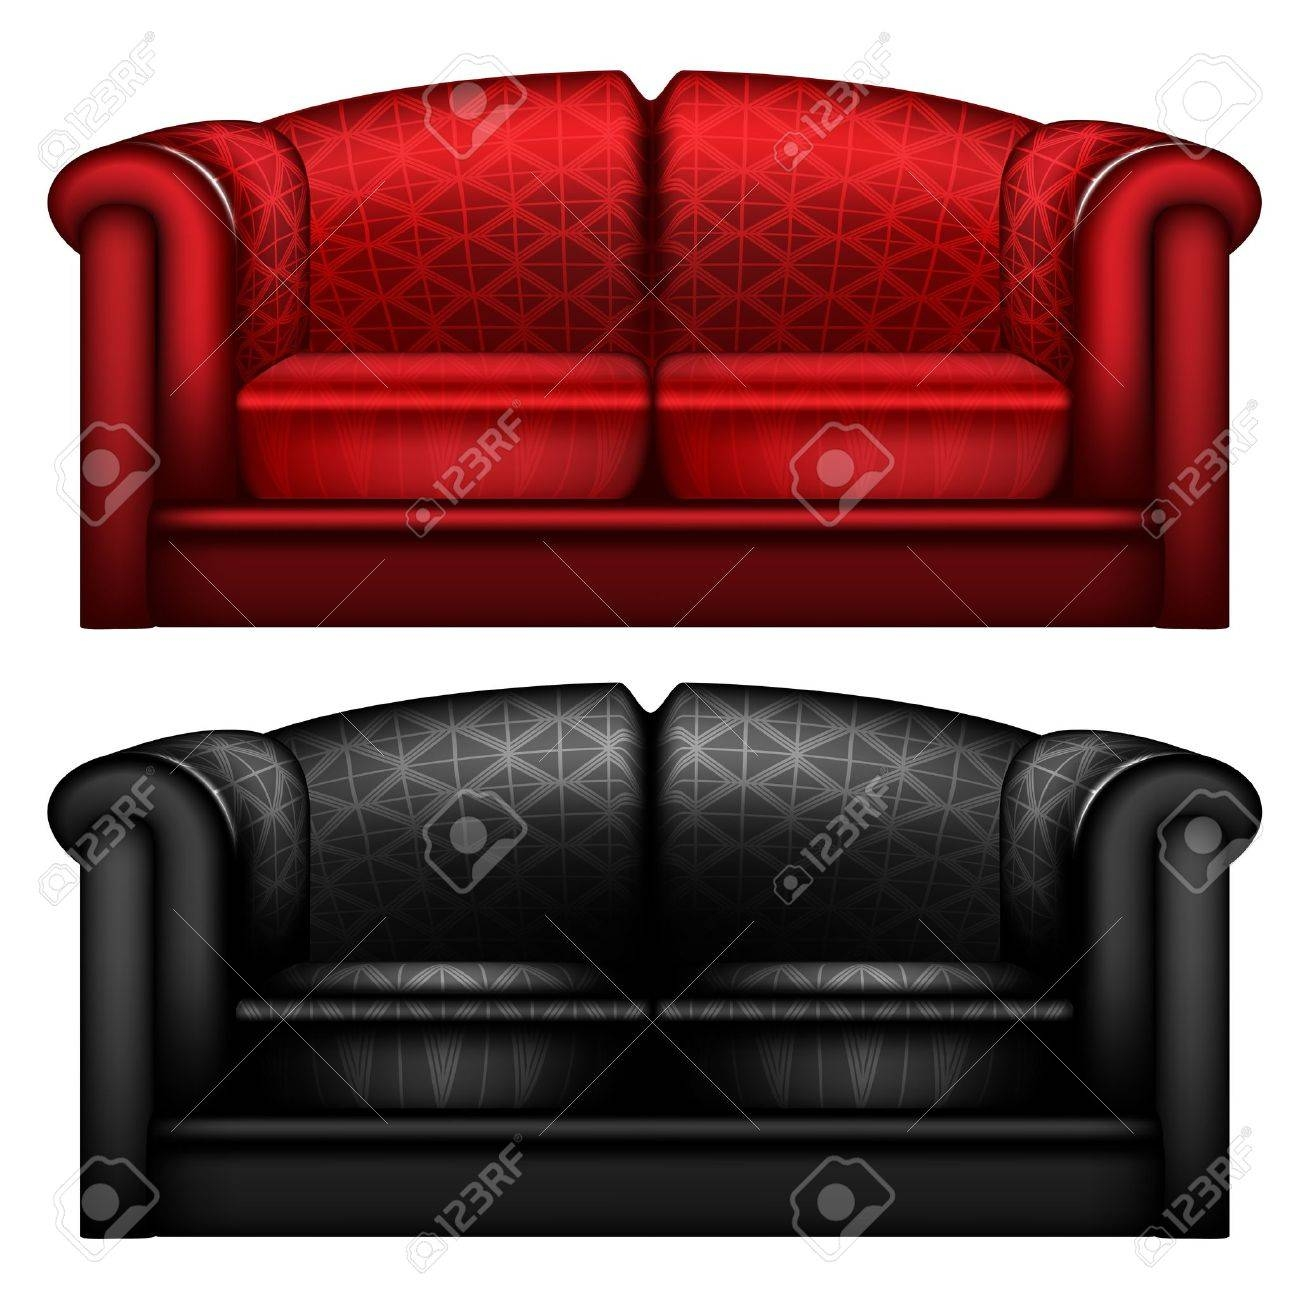 Black And Red Leather Sofa Isolated Stock Photo, Picture And inside Sofa Red And Black (Image 9 of 25)